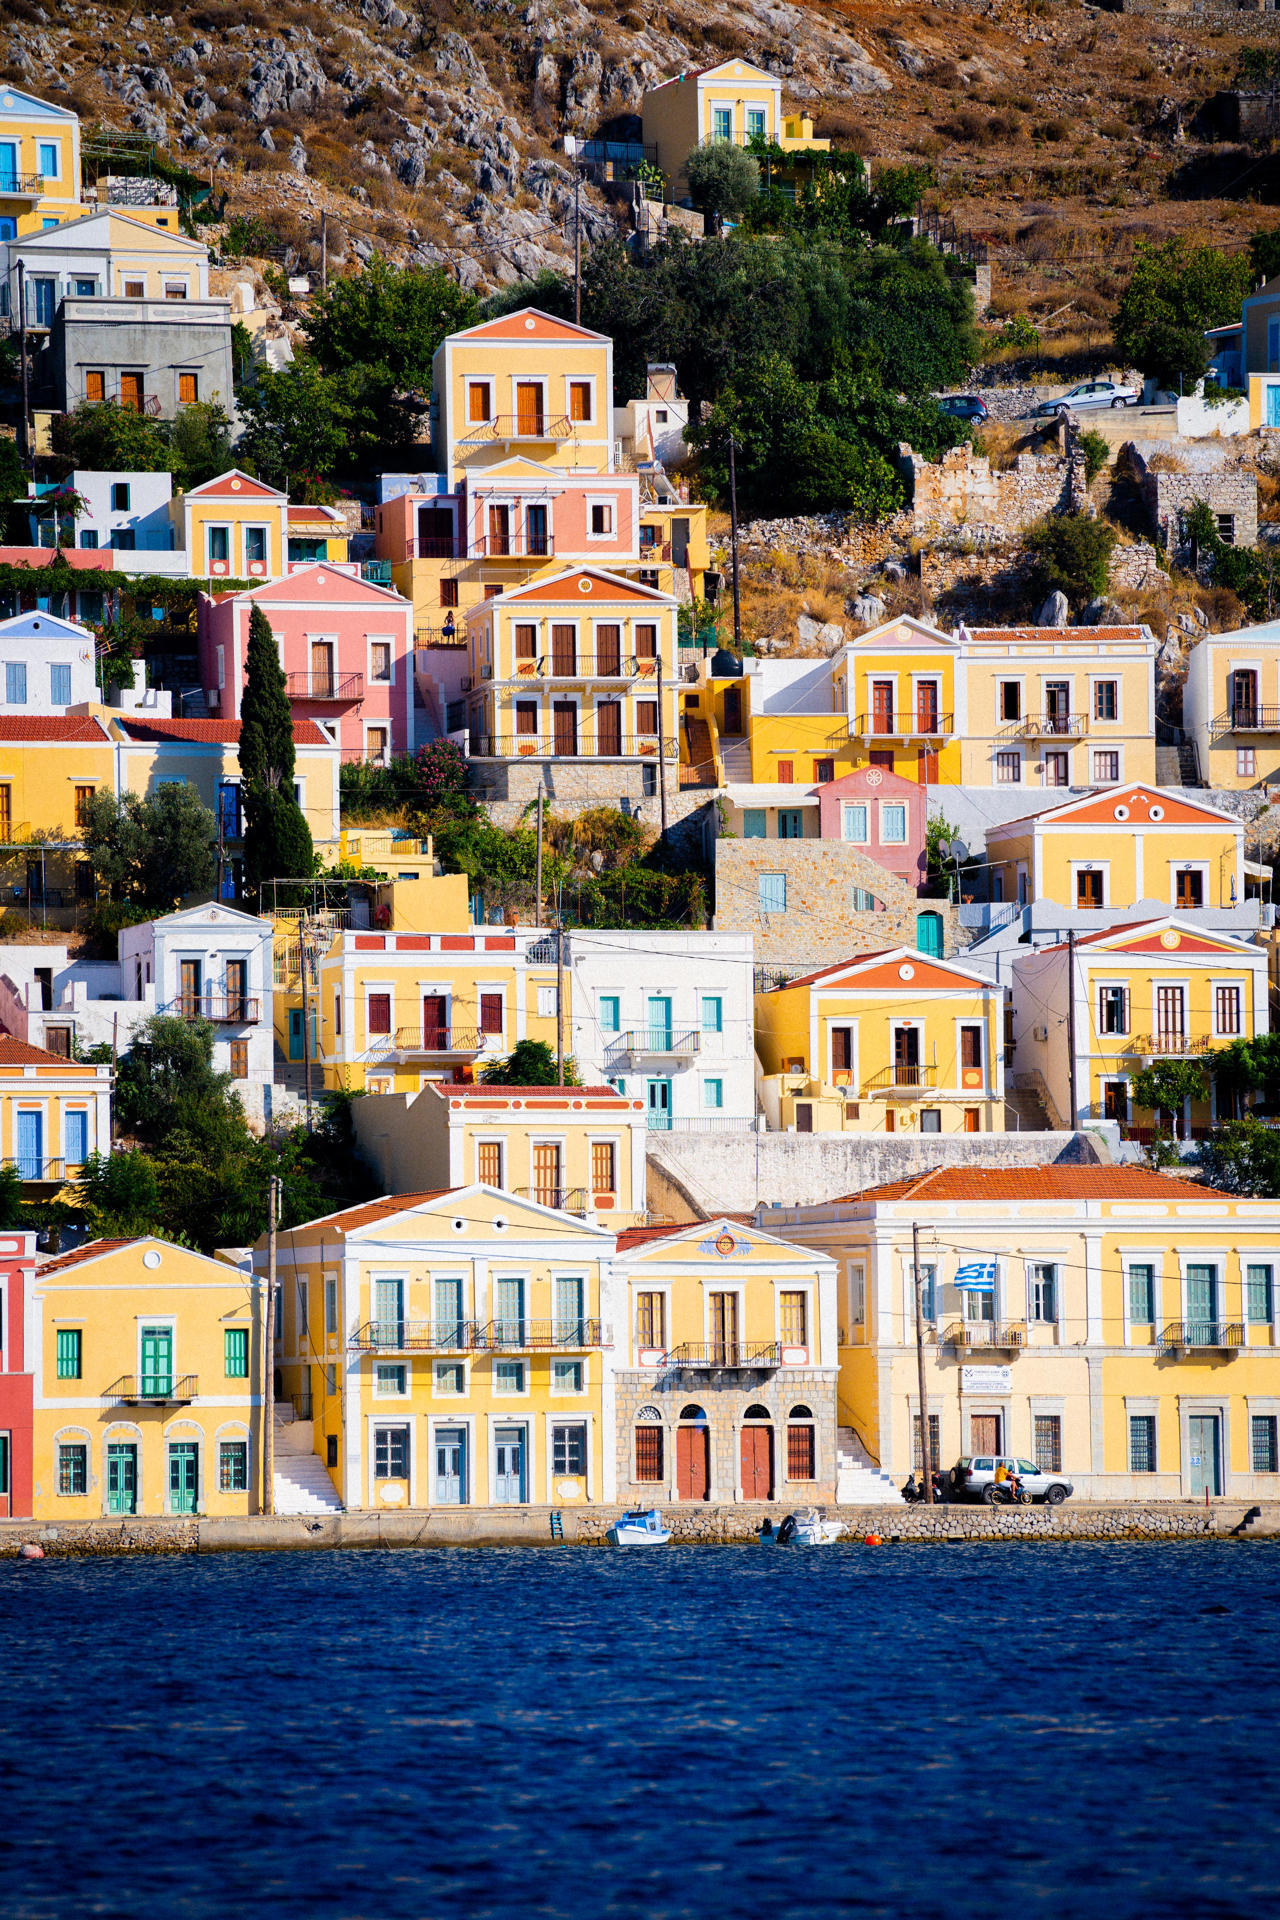 Appreciate the colours and grandeur of the mansion houses rising up the hill in Gialos